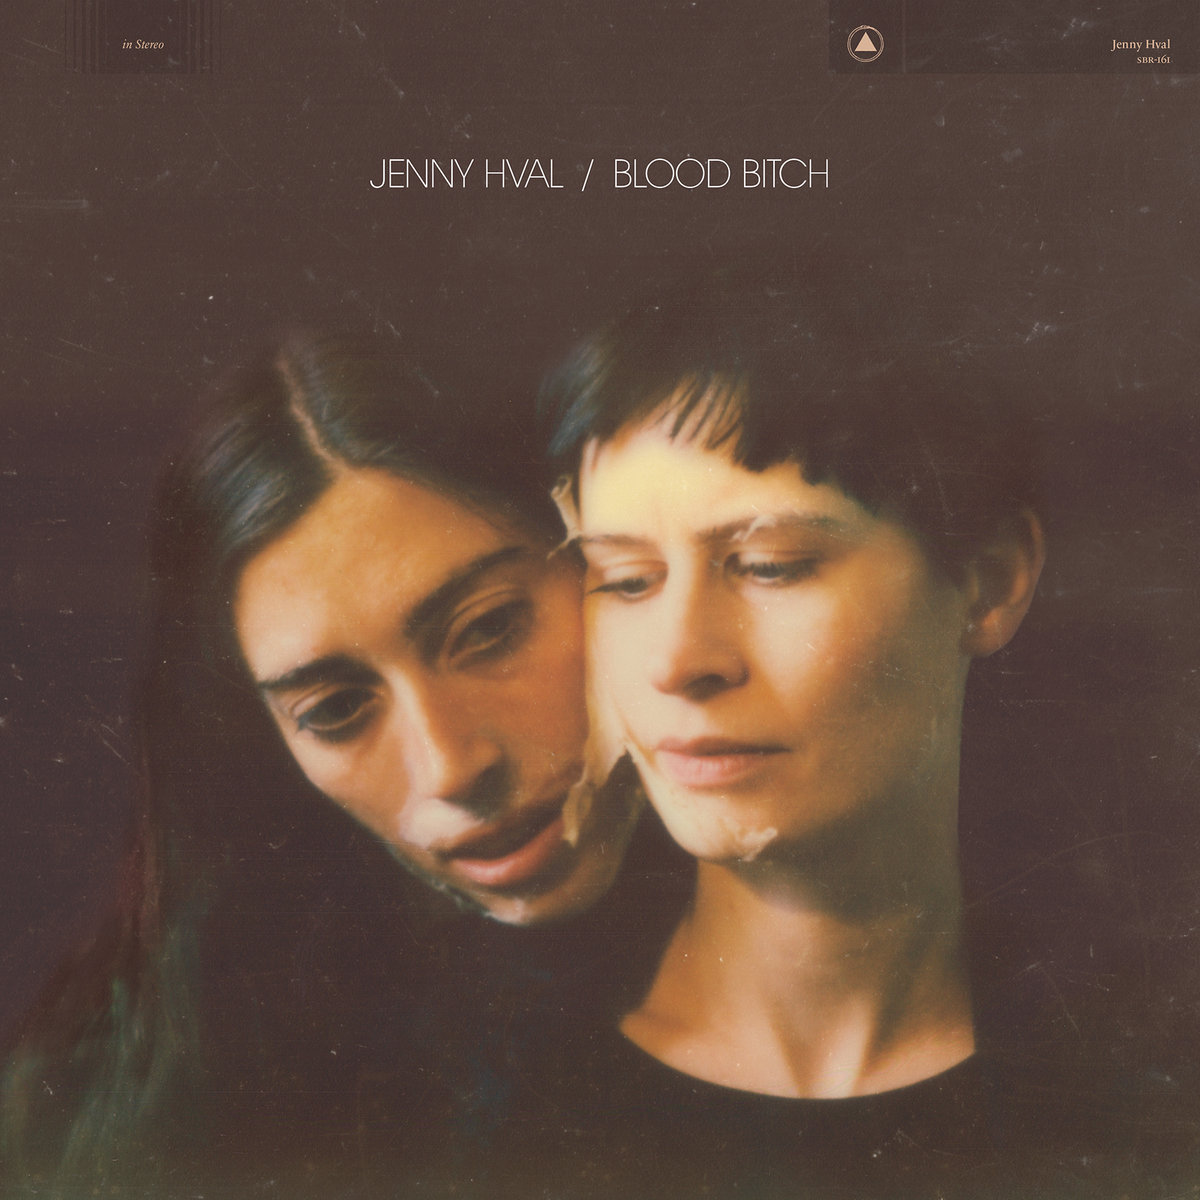 'Blood Bitch' by Jenny Hval, album review by Gregory Adams.